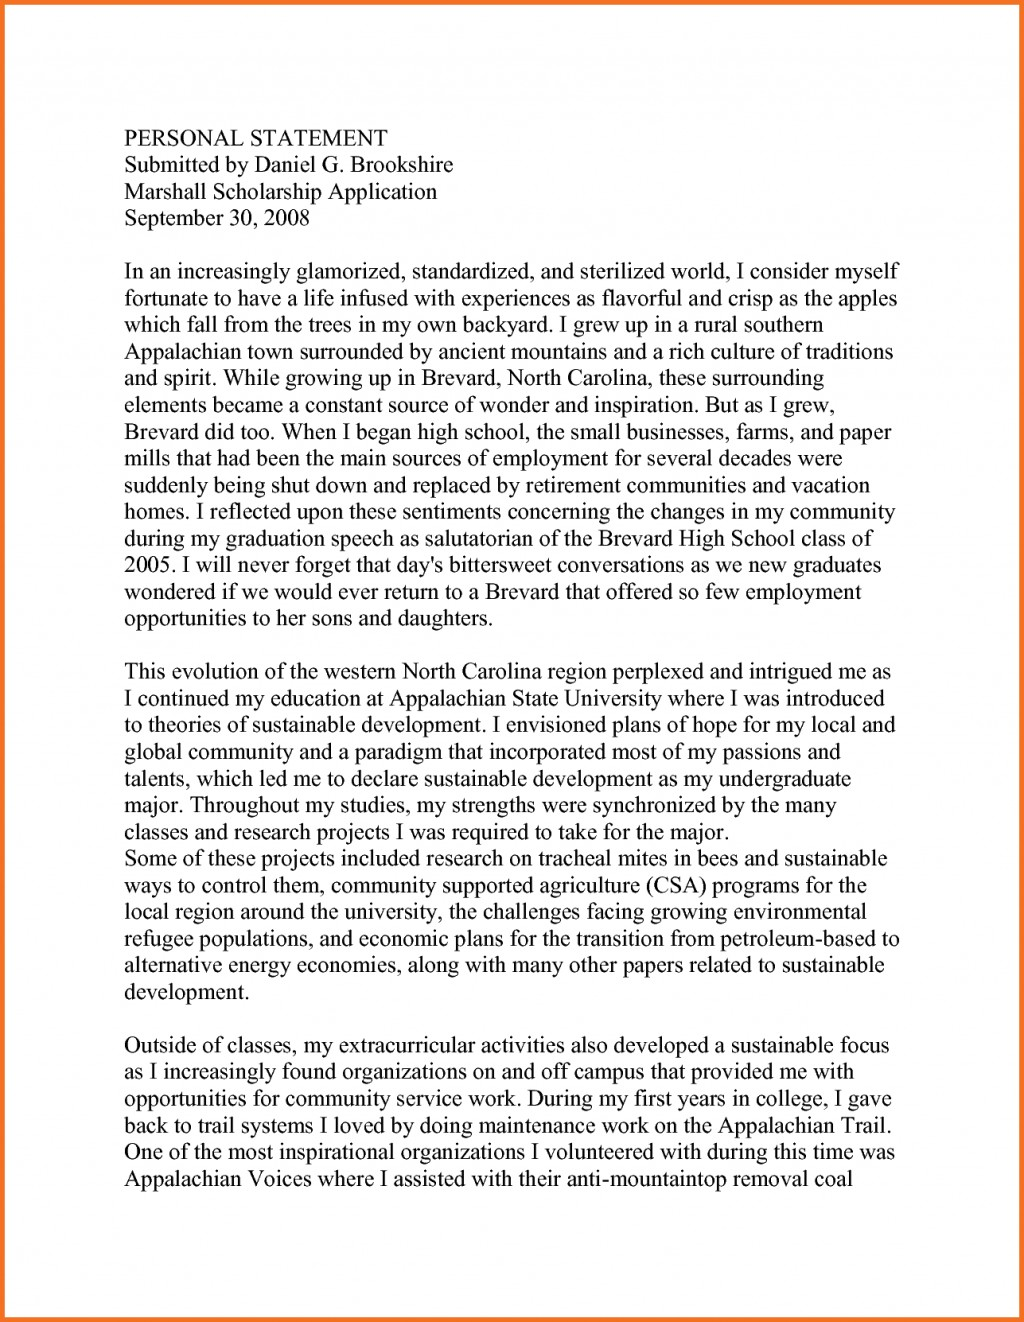 014 Scholarship Essay Template Example Samples Artresume Sample Personal Statement Nsvwiupr Stunning Structure Format Examples Guidelines Large